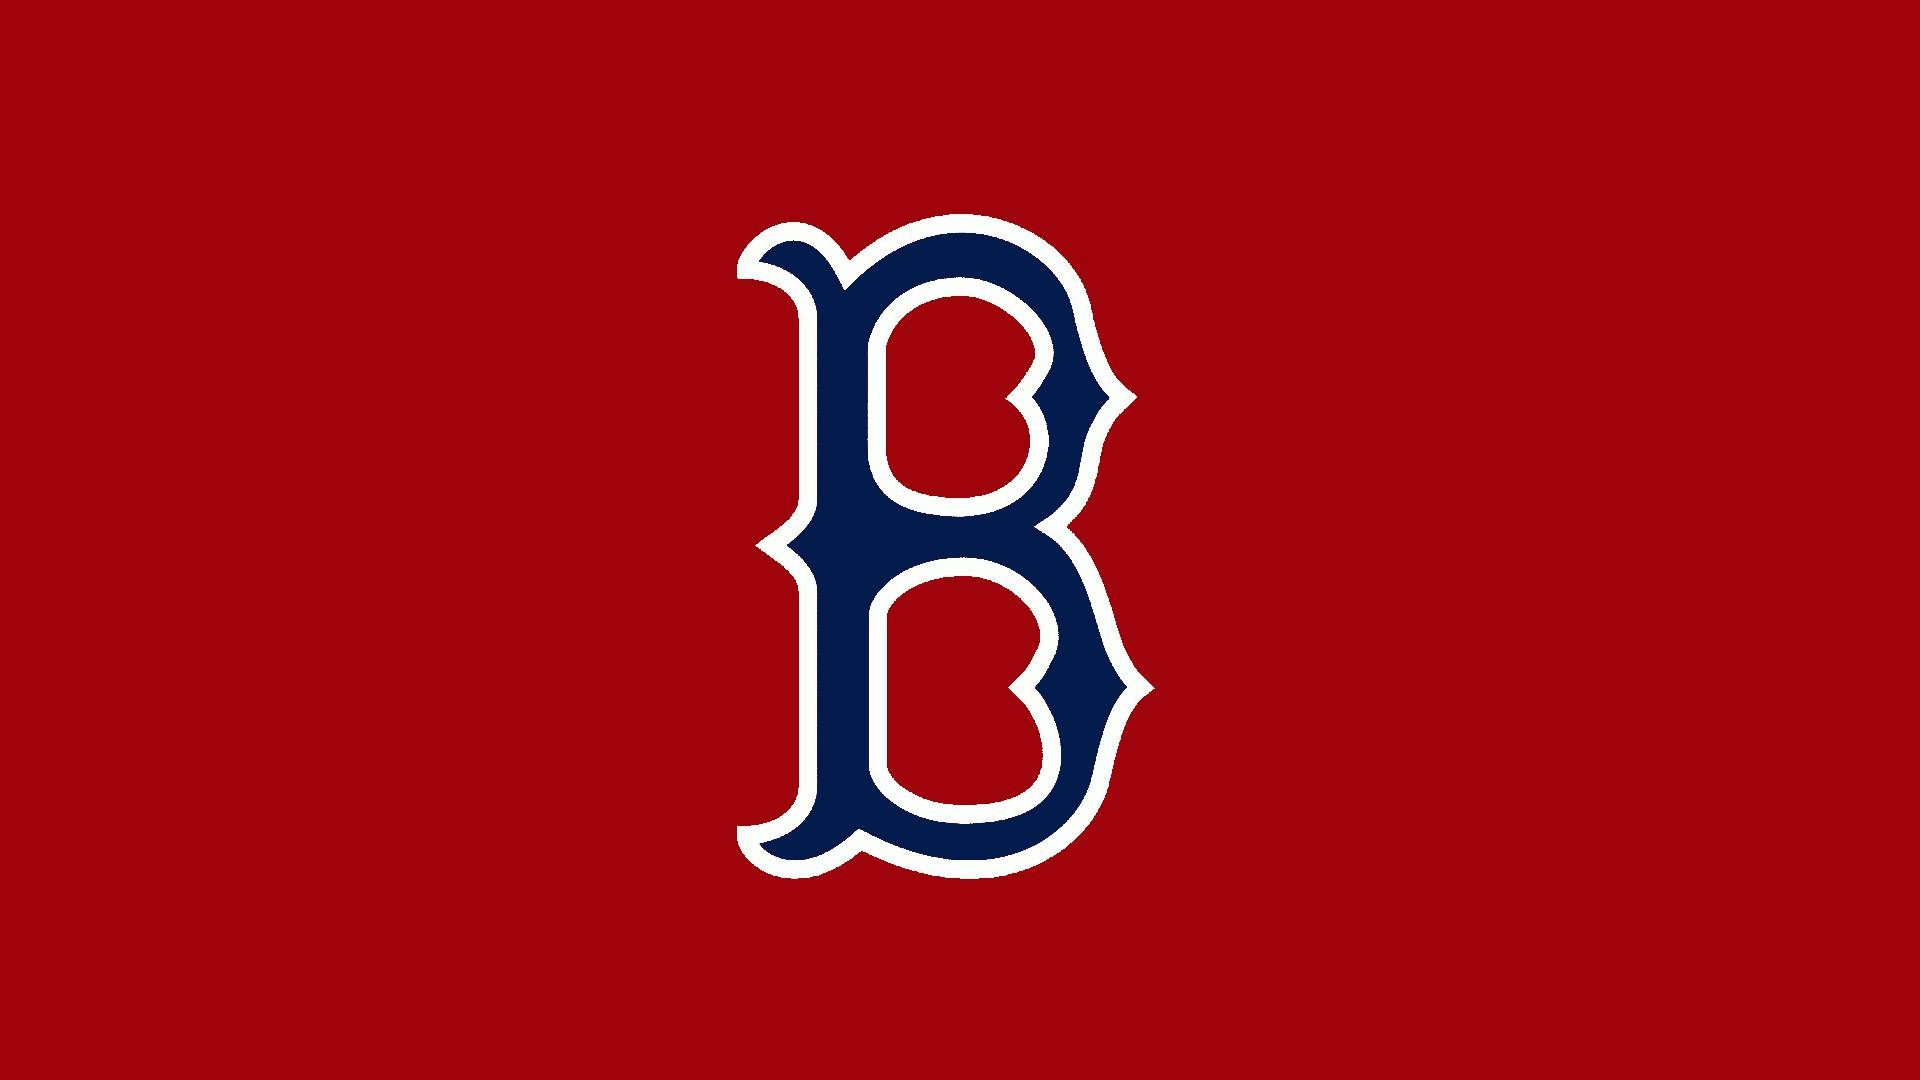 Boston Red Sox Logo Wallpaper | Free Download Clip Art | Free Clip Inside 2017 Boston Red Sox Wall Art (View 6 of 25)